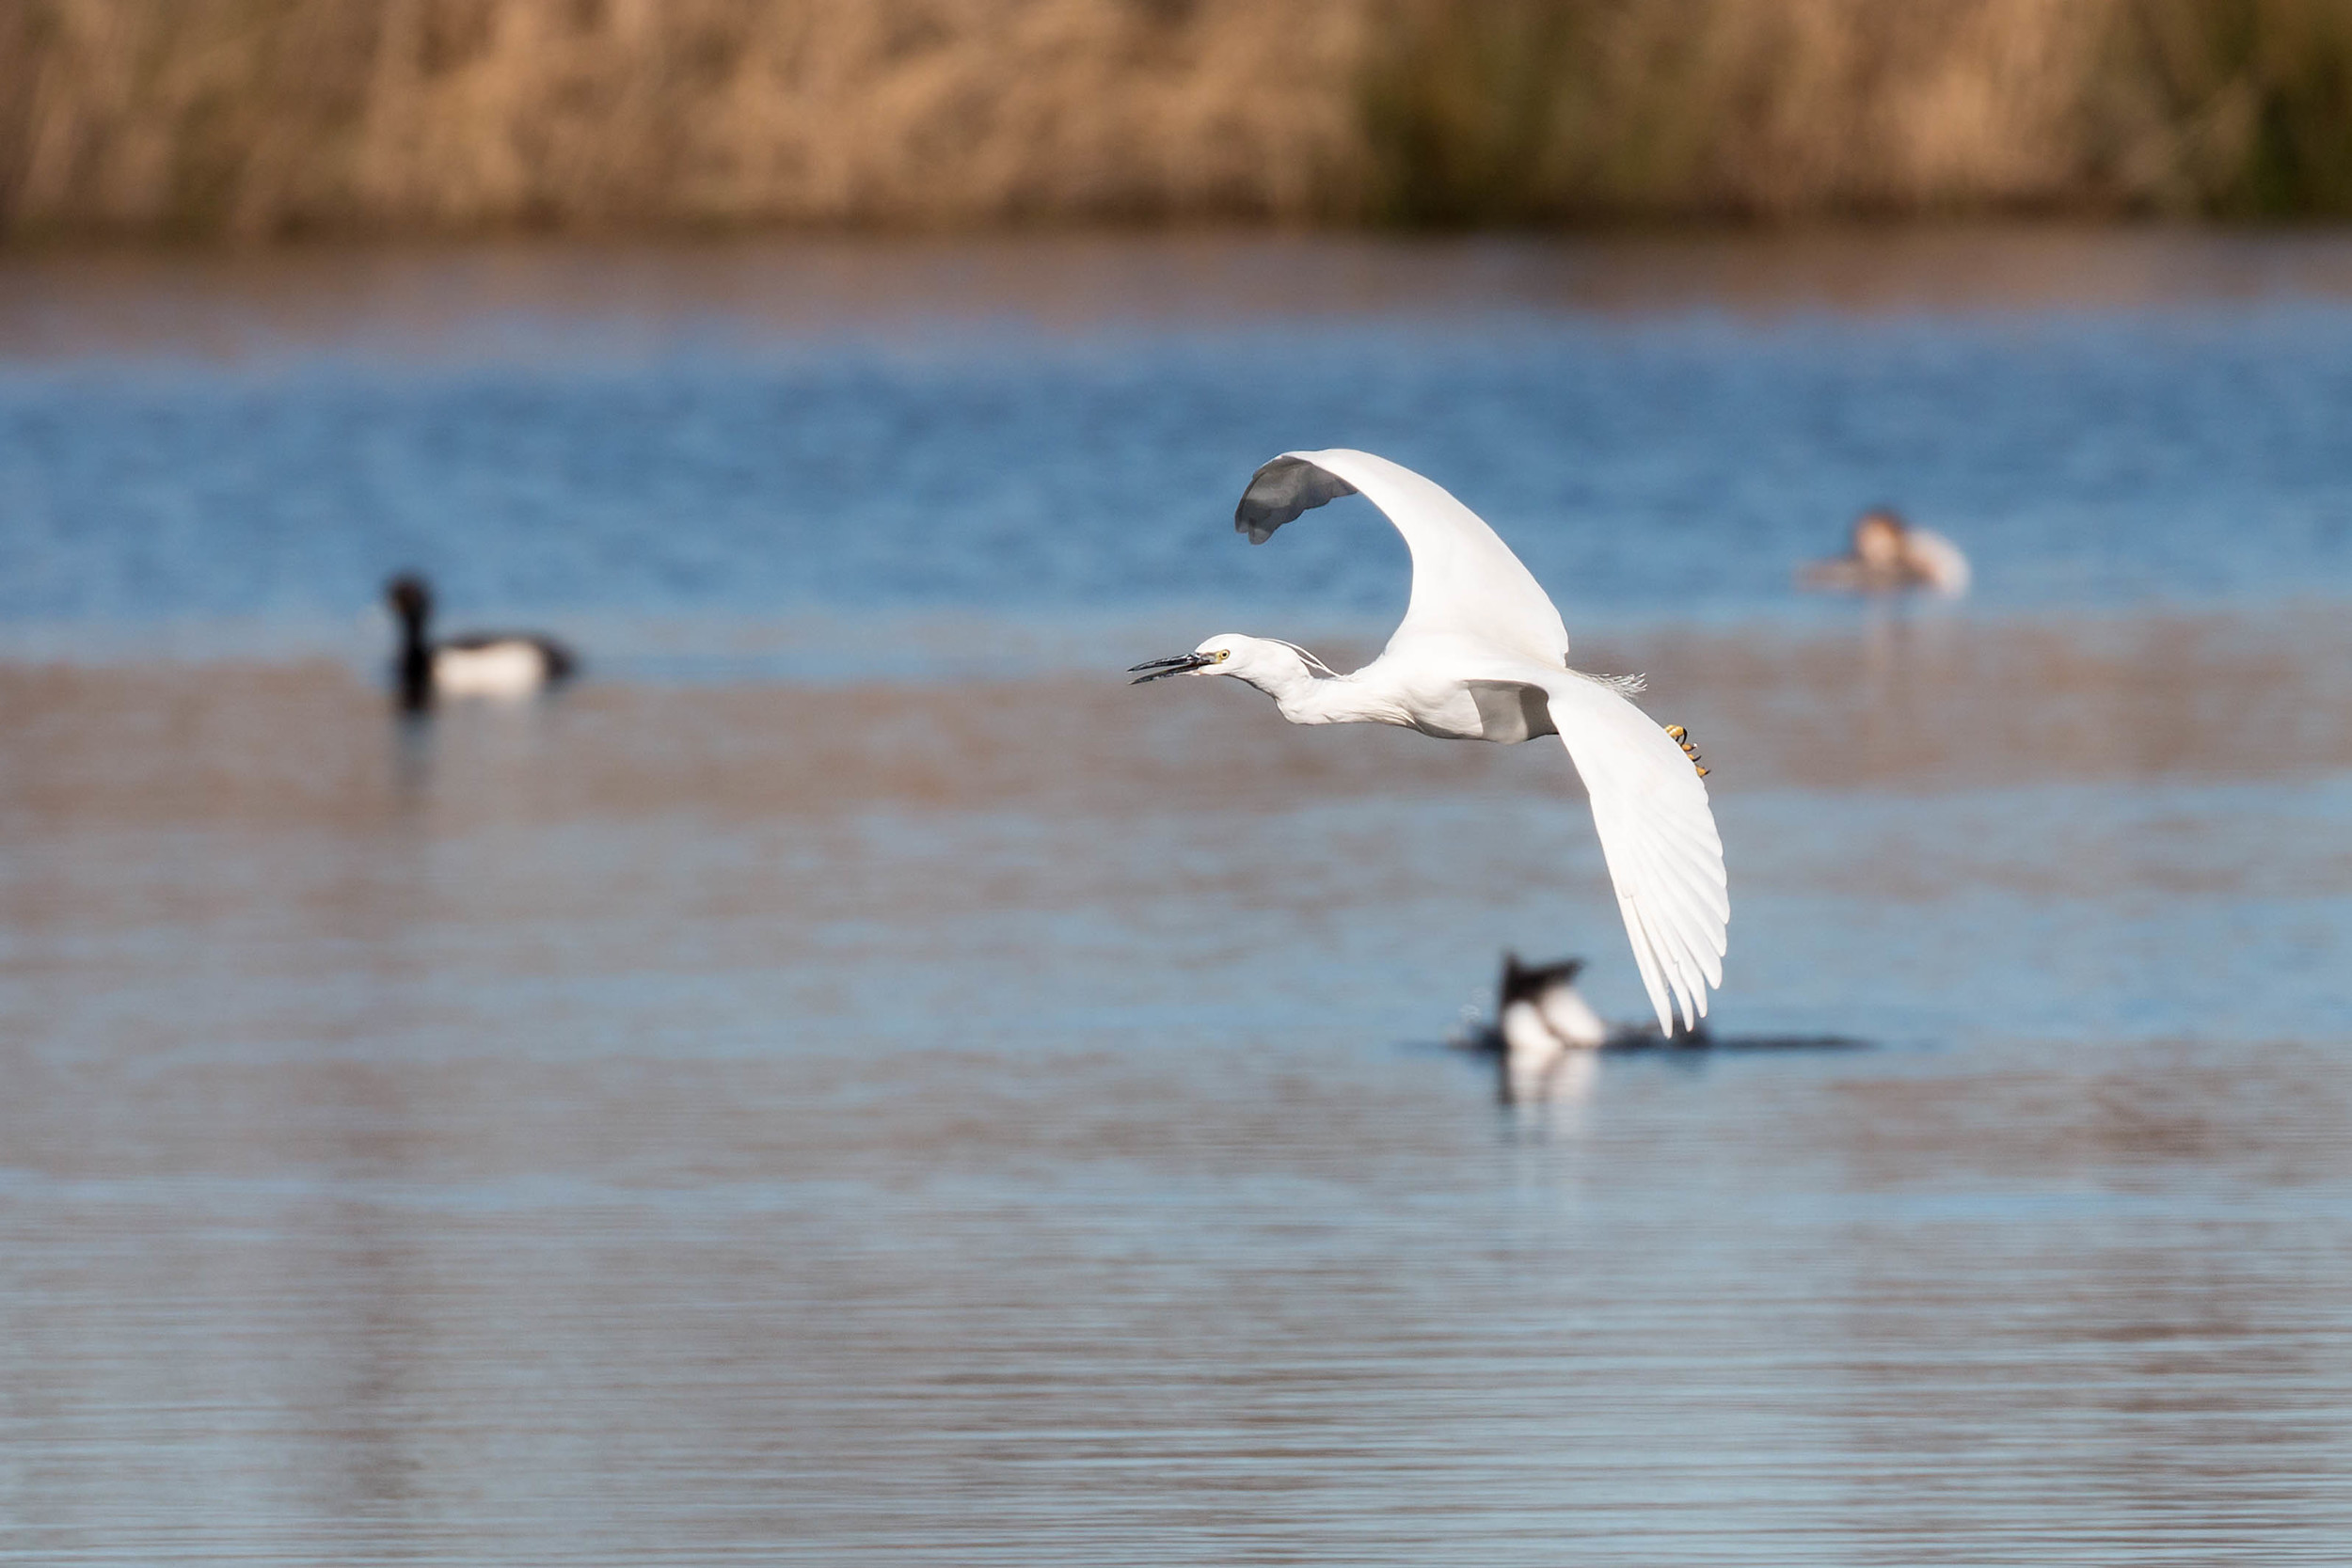 Little Egret overflying the lake